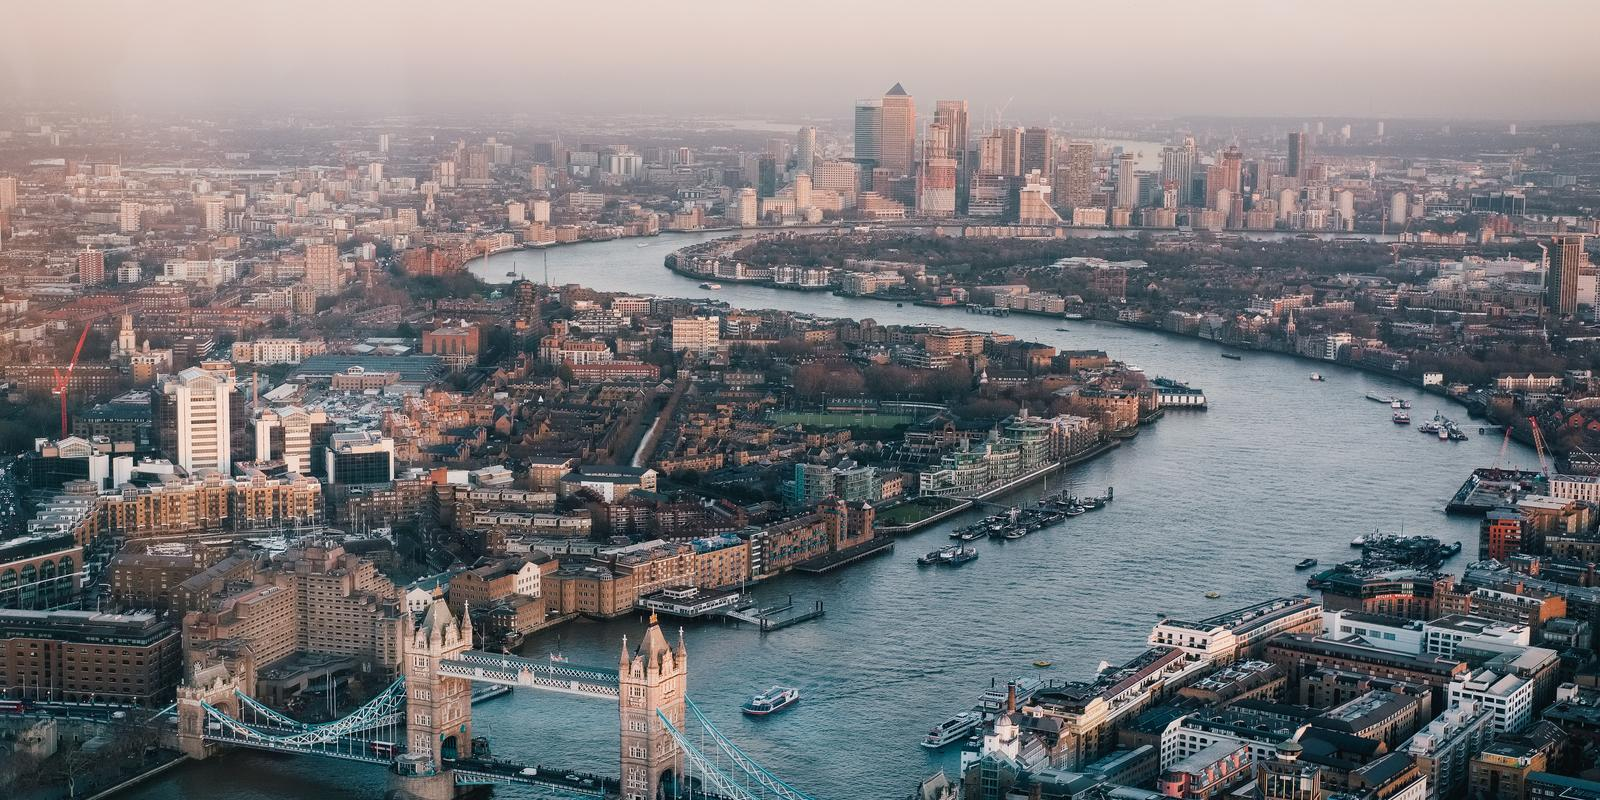 Aerial view of London skyline and Thames River